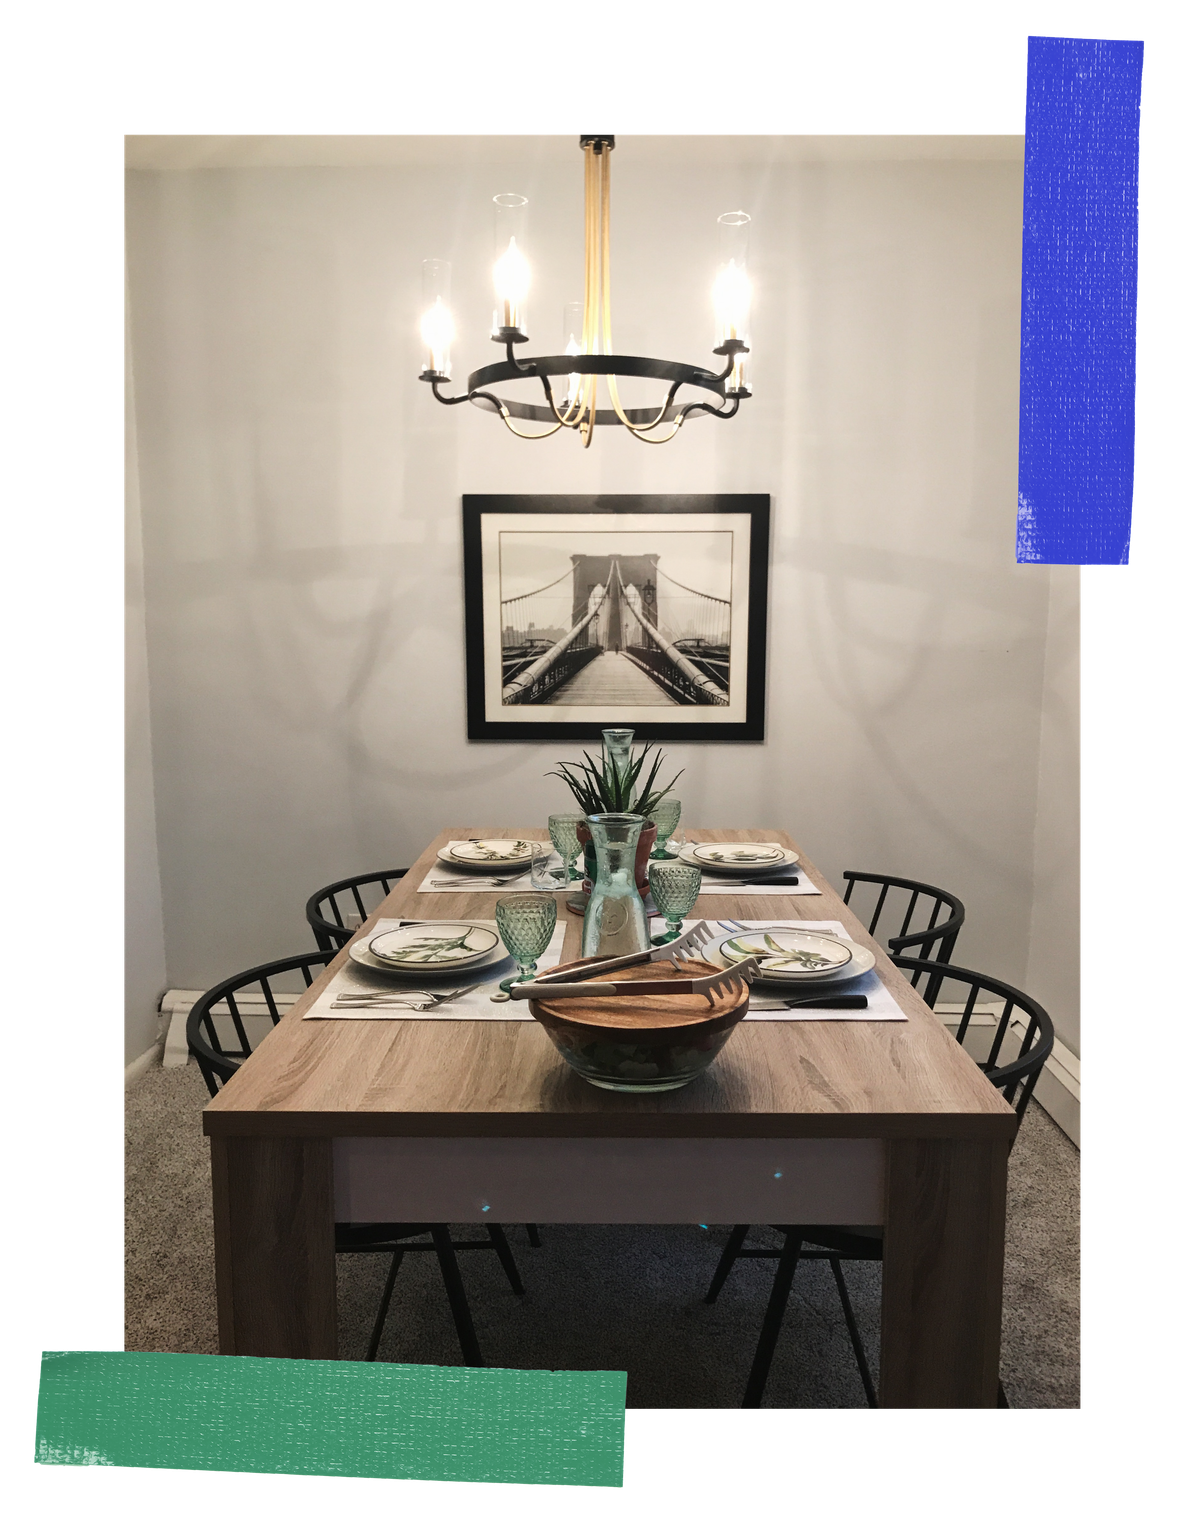 A photograph of the dining space all set up for Lauren's first official family dinner.